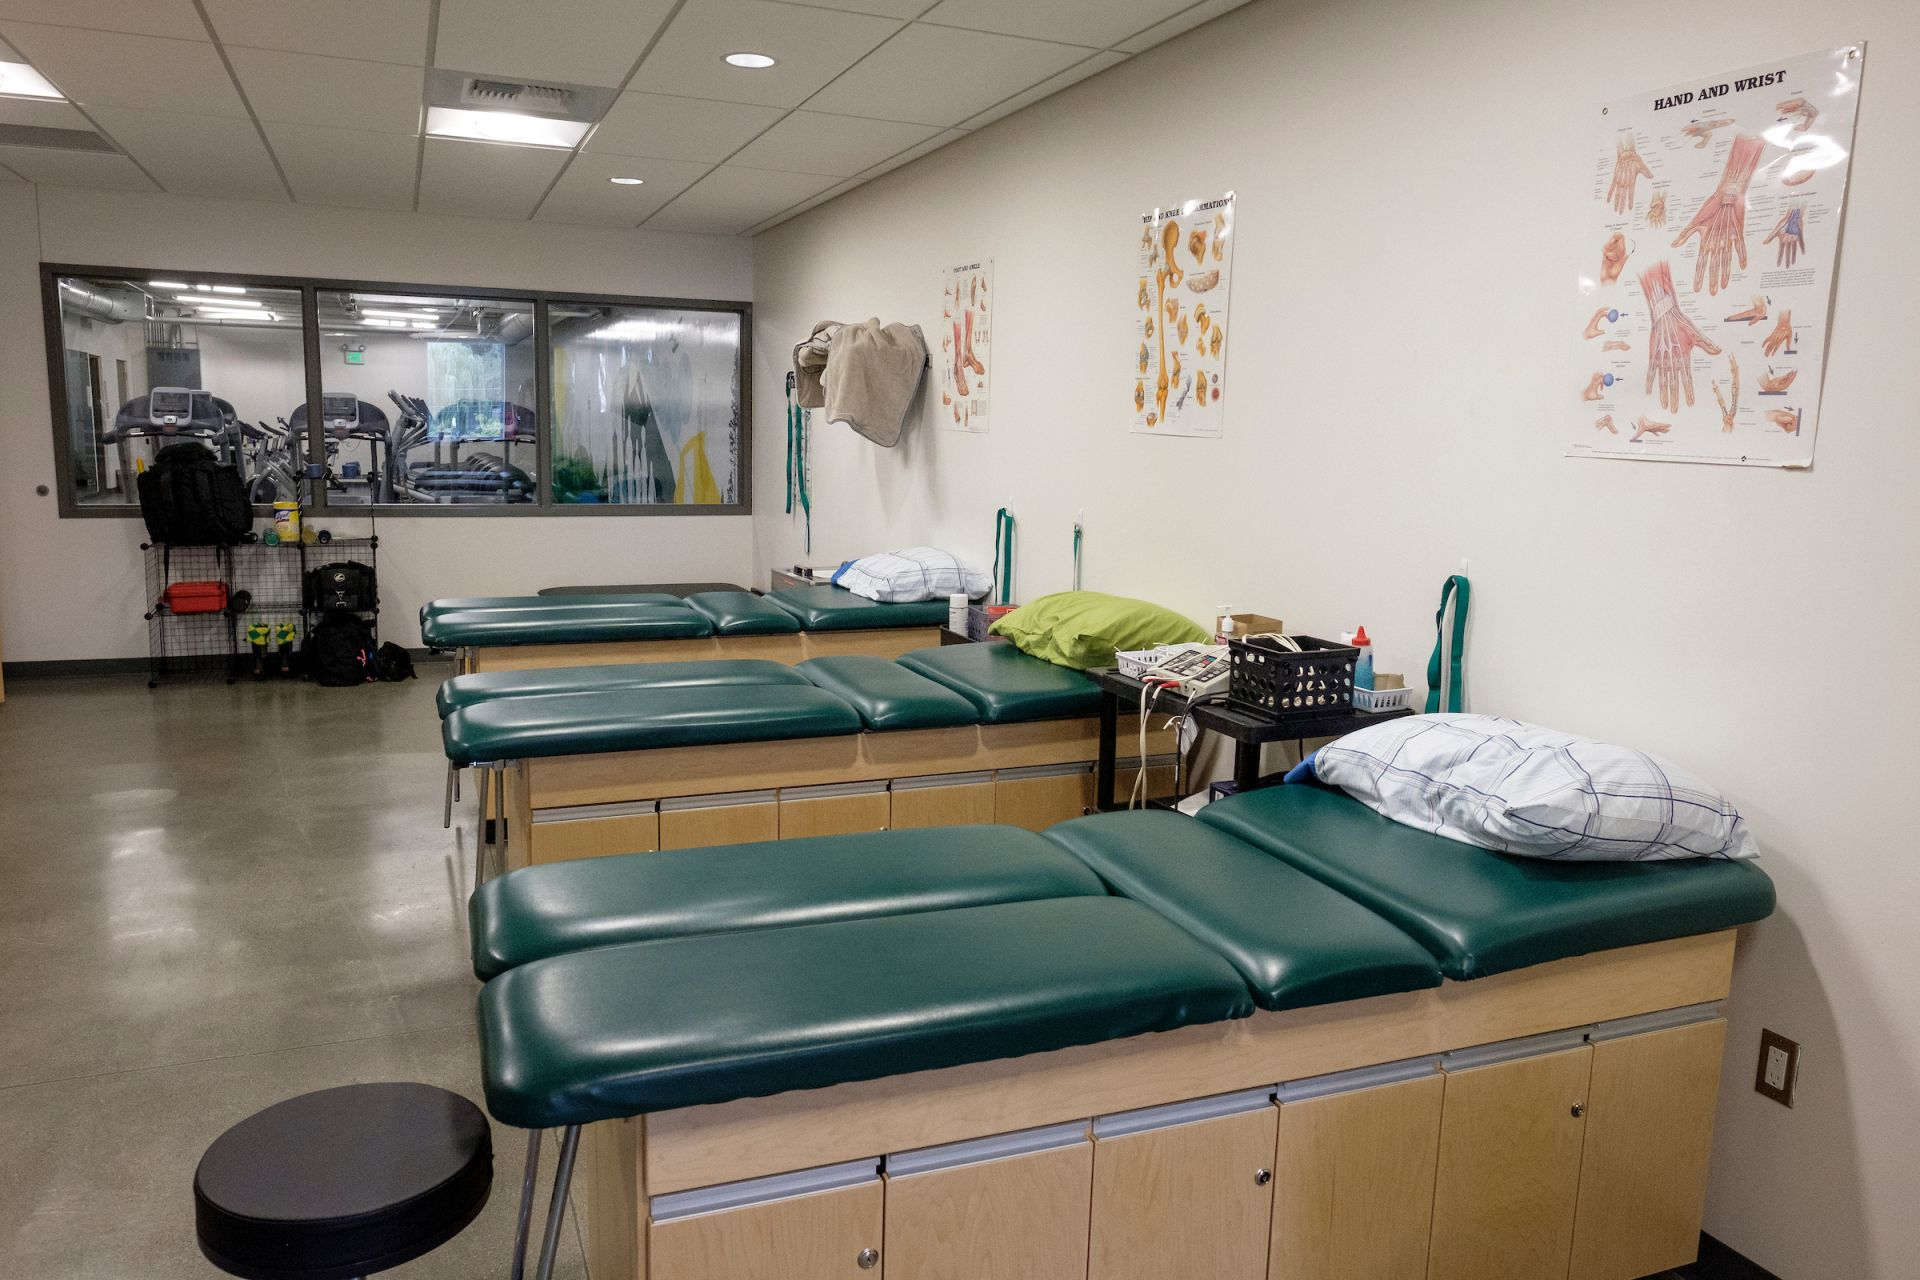 The athletic training room, featuring multiple treatment beds and rehab tools, is put to good use both by our athletes recovering from injury as well as students learning sports medicine.